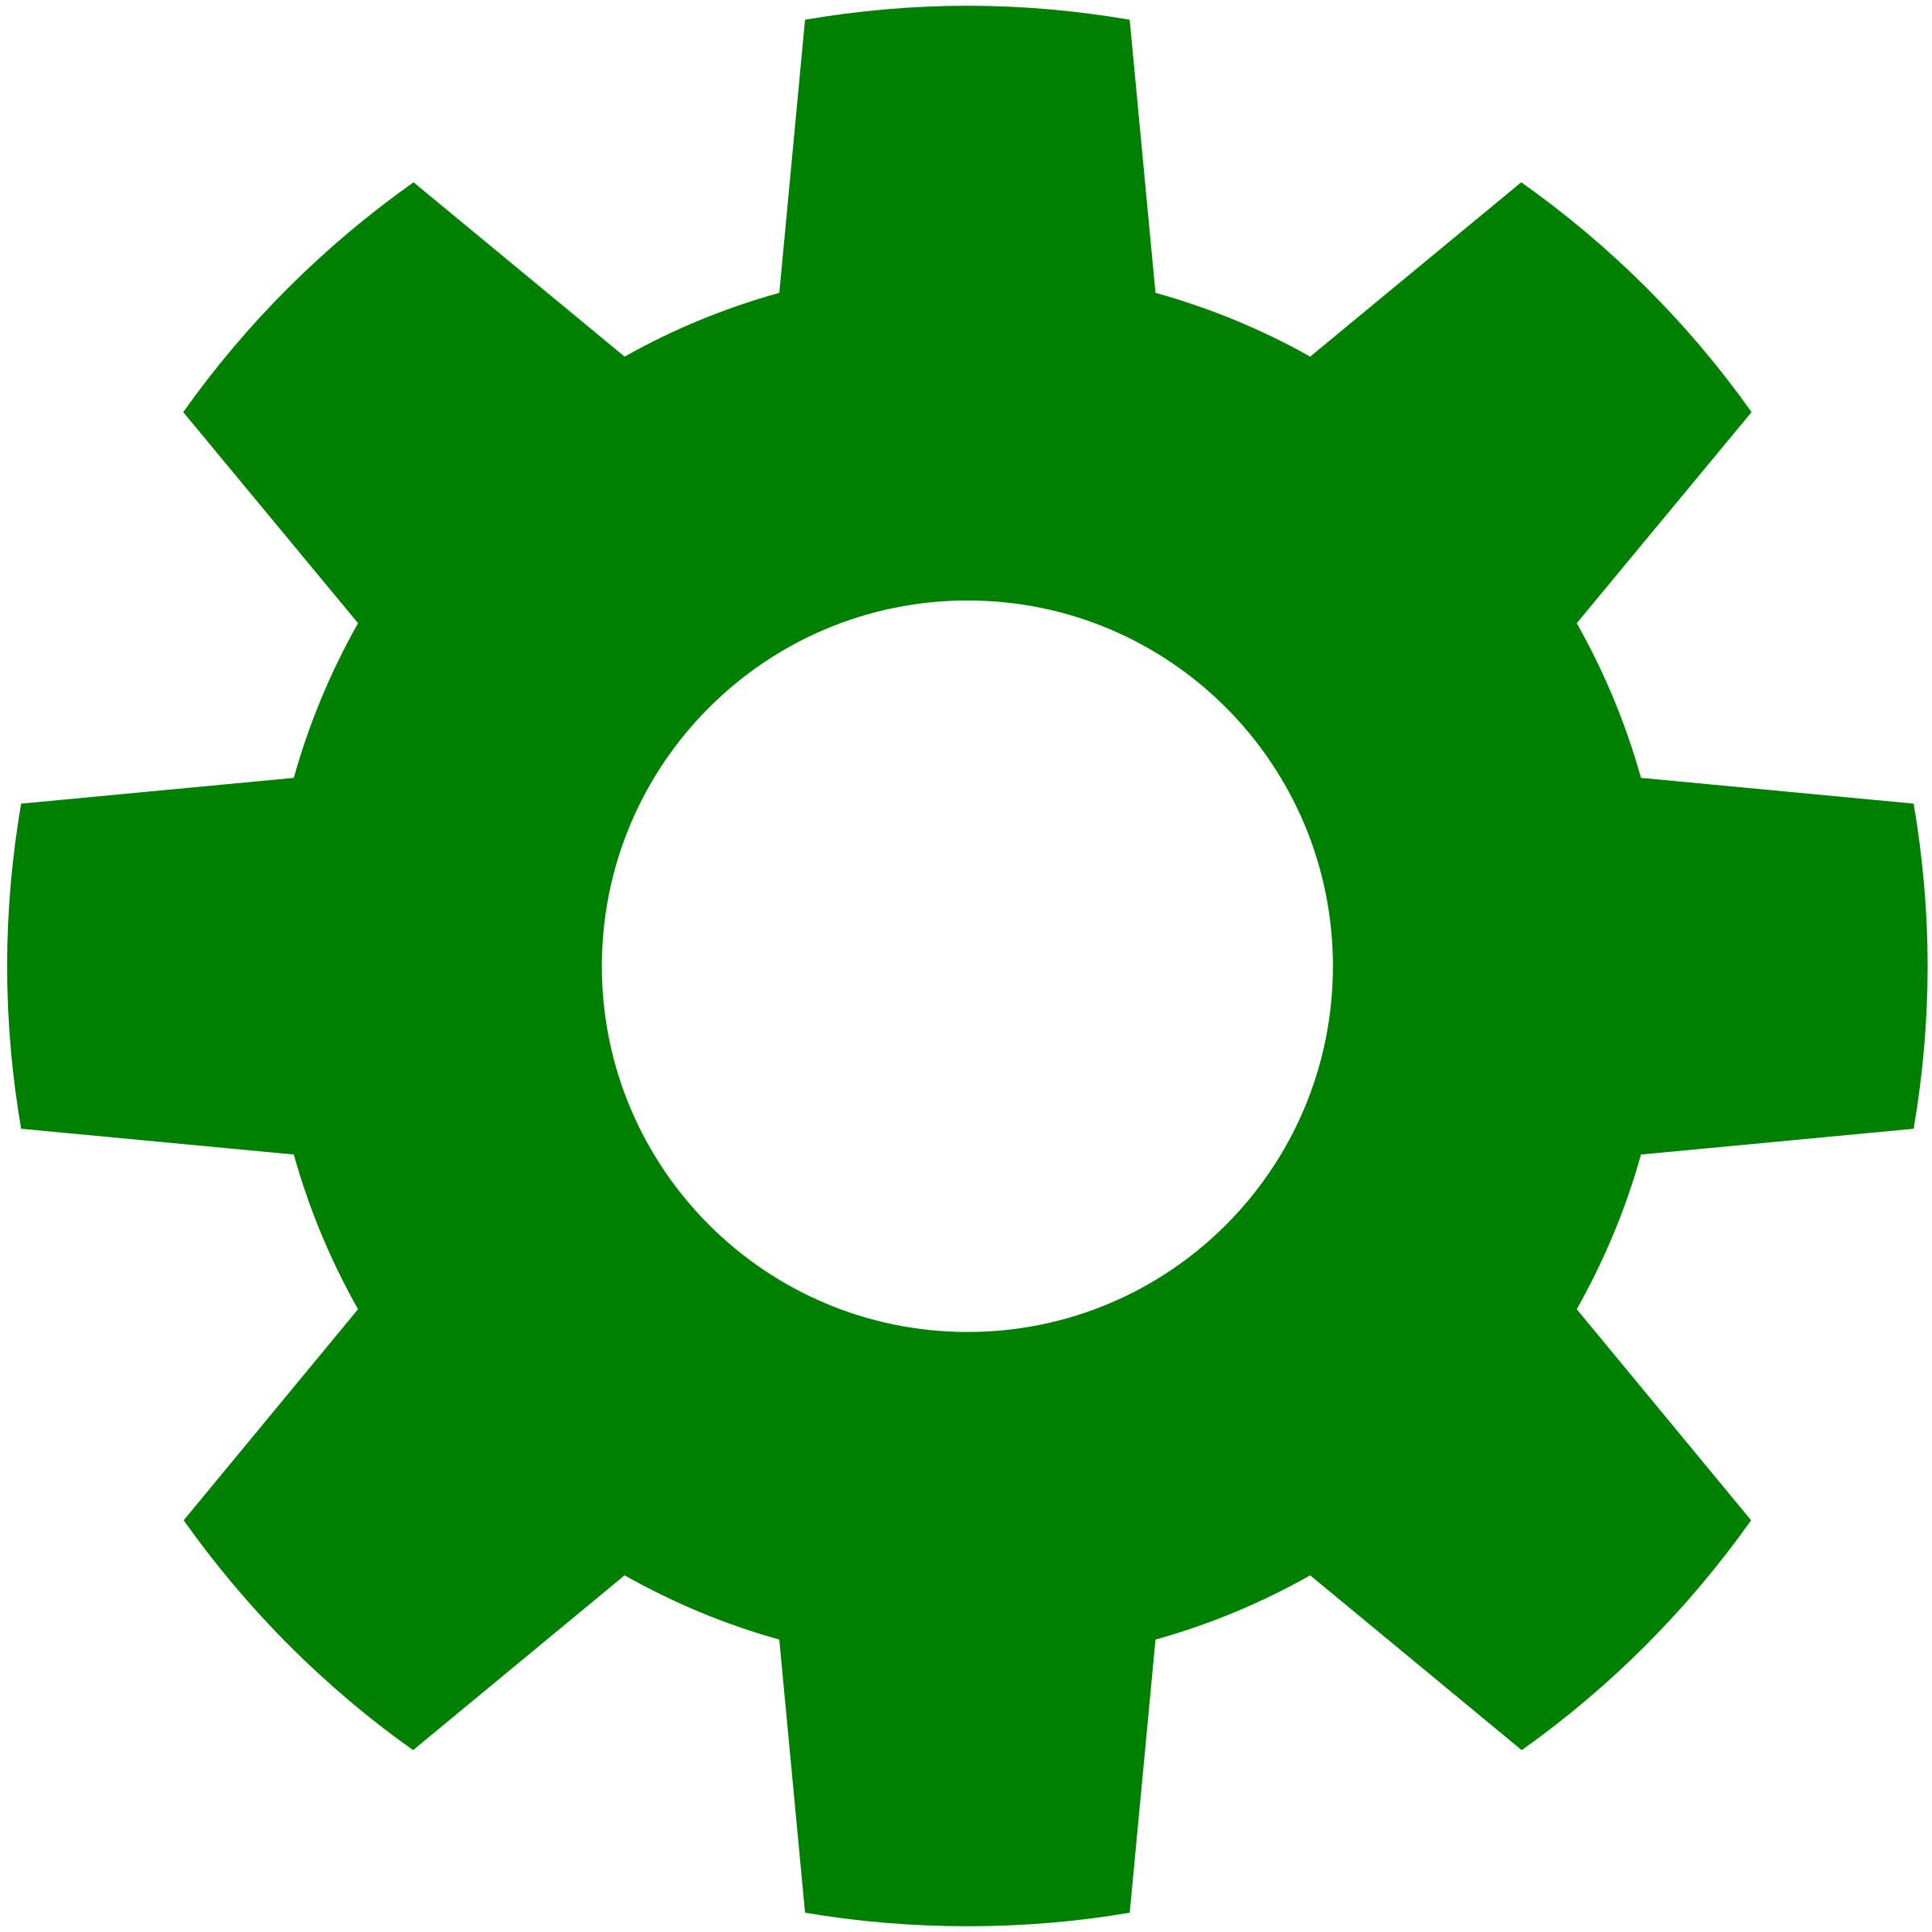 Gear in green by aztlek